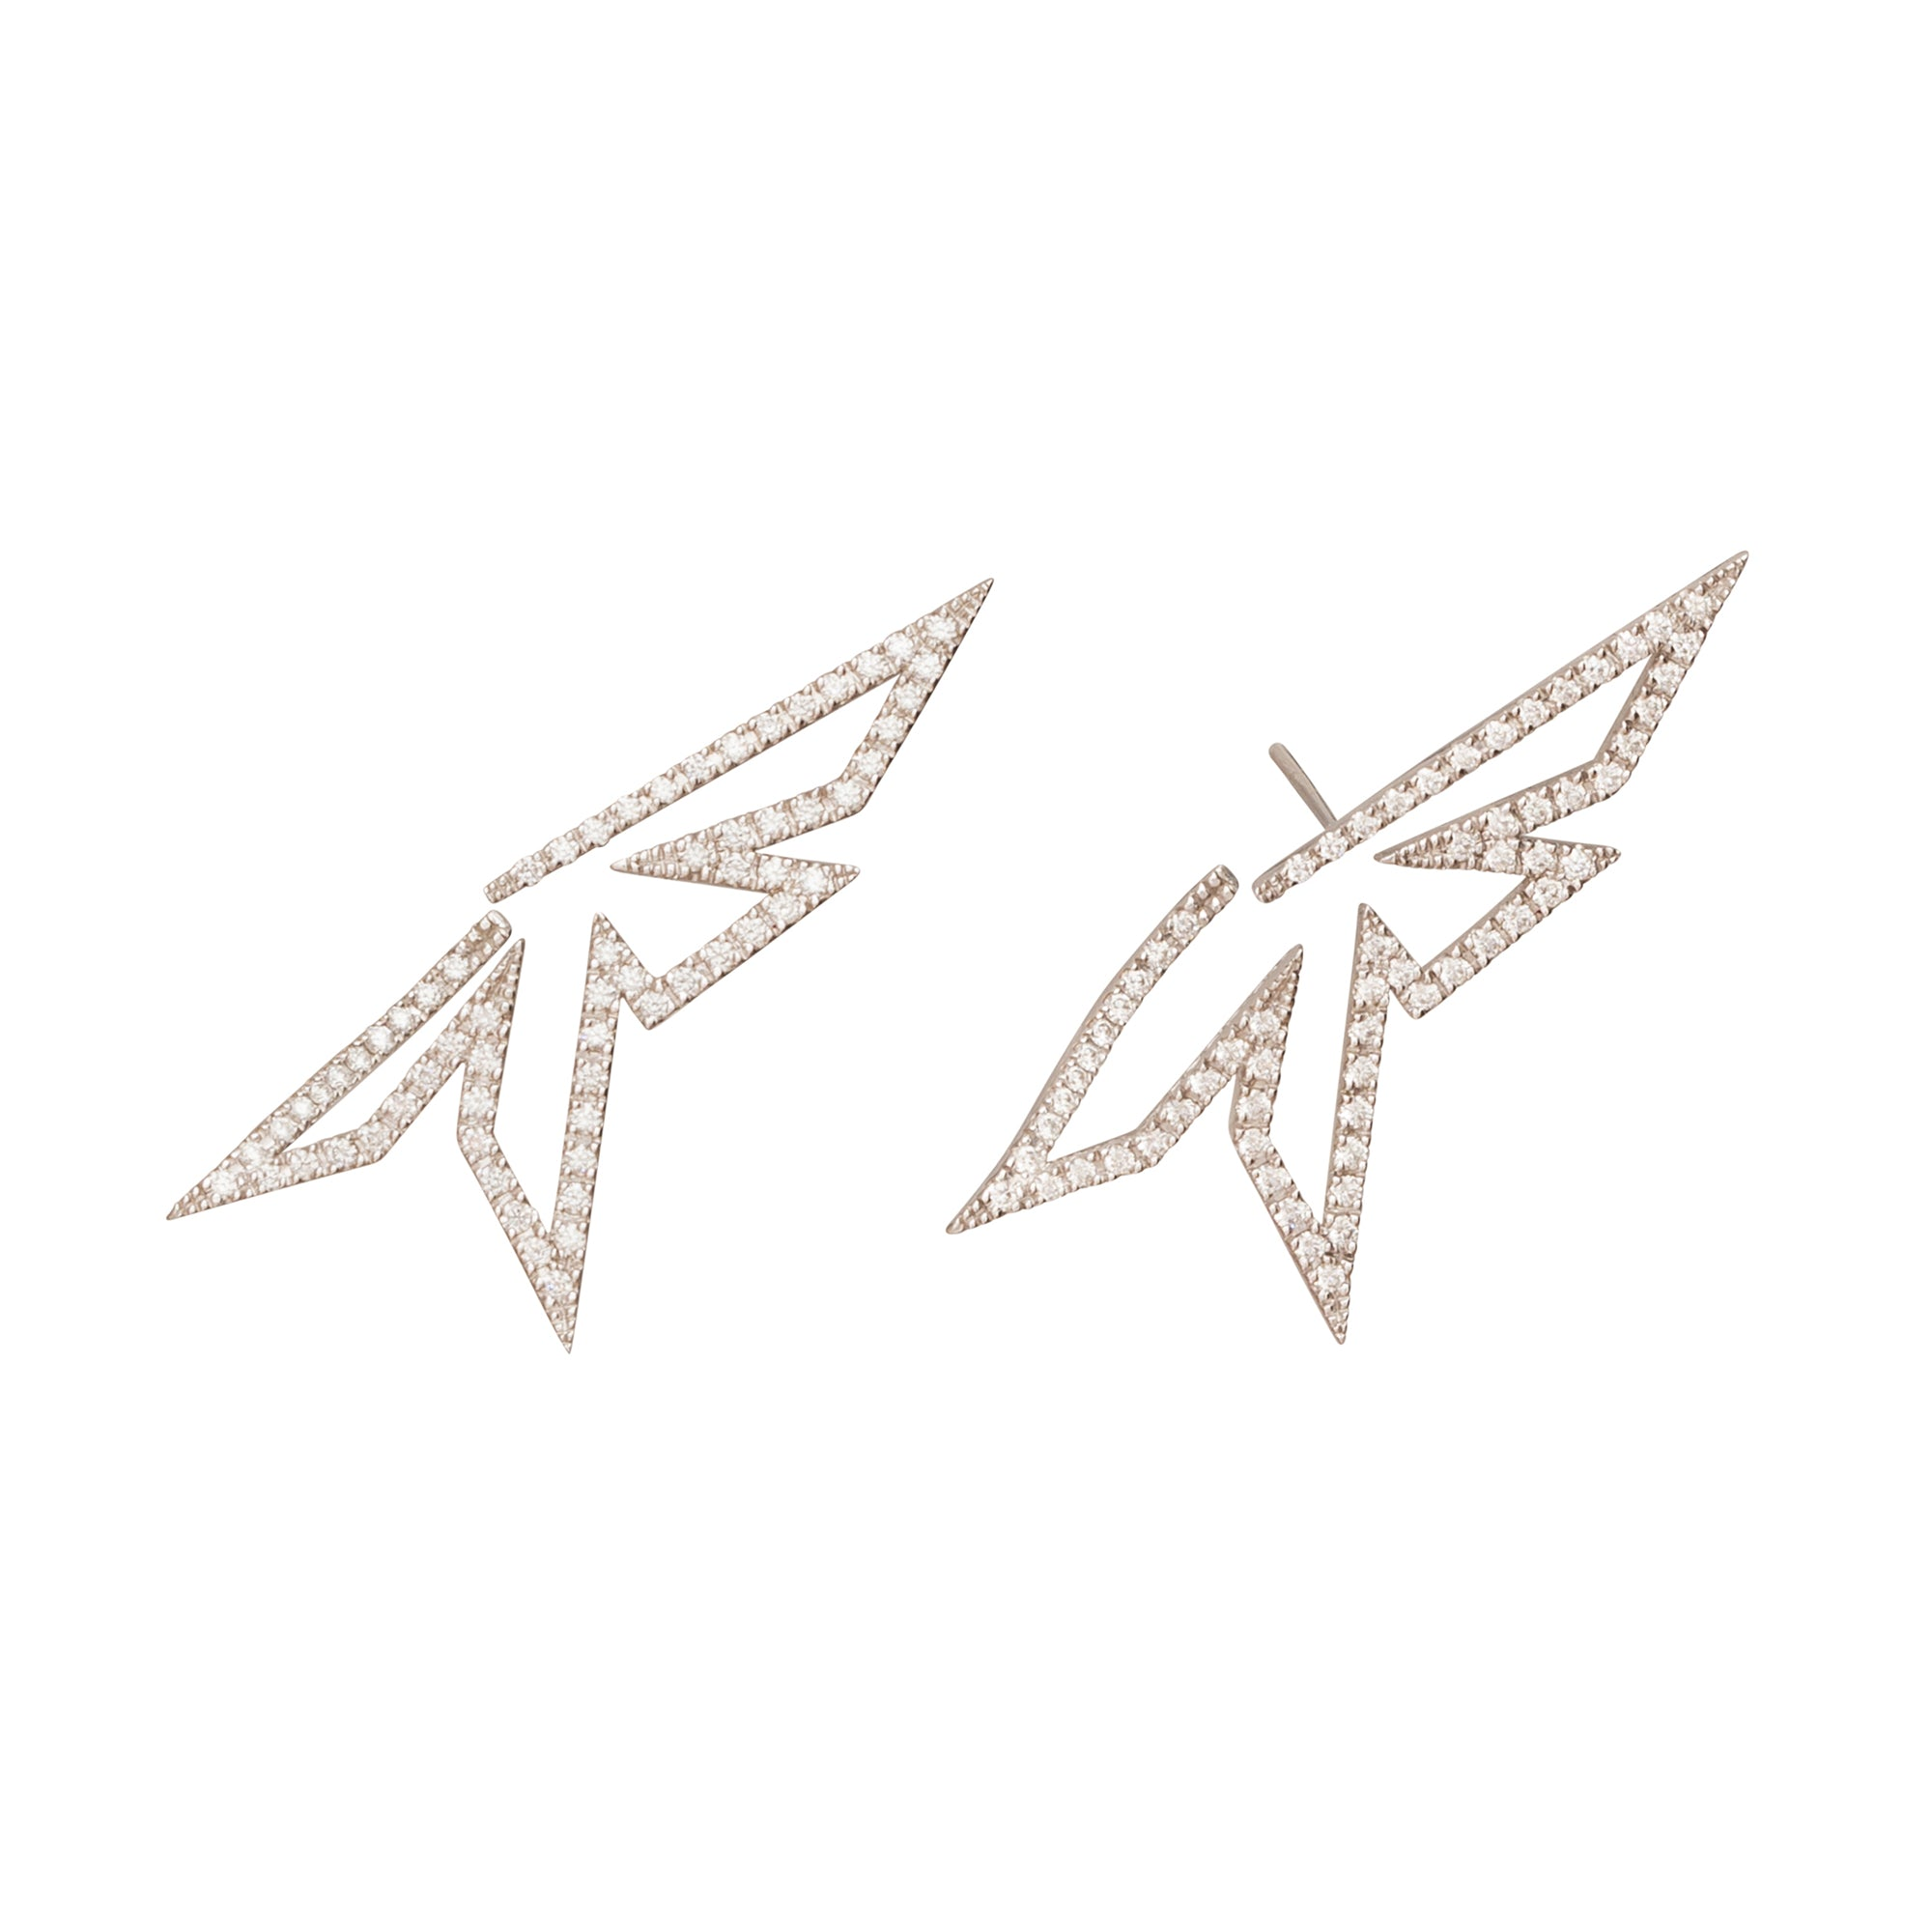 Origami Silhouette Earrings by Kavant & Sharart for Broken English Jewelry